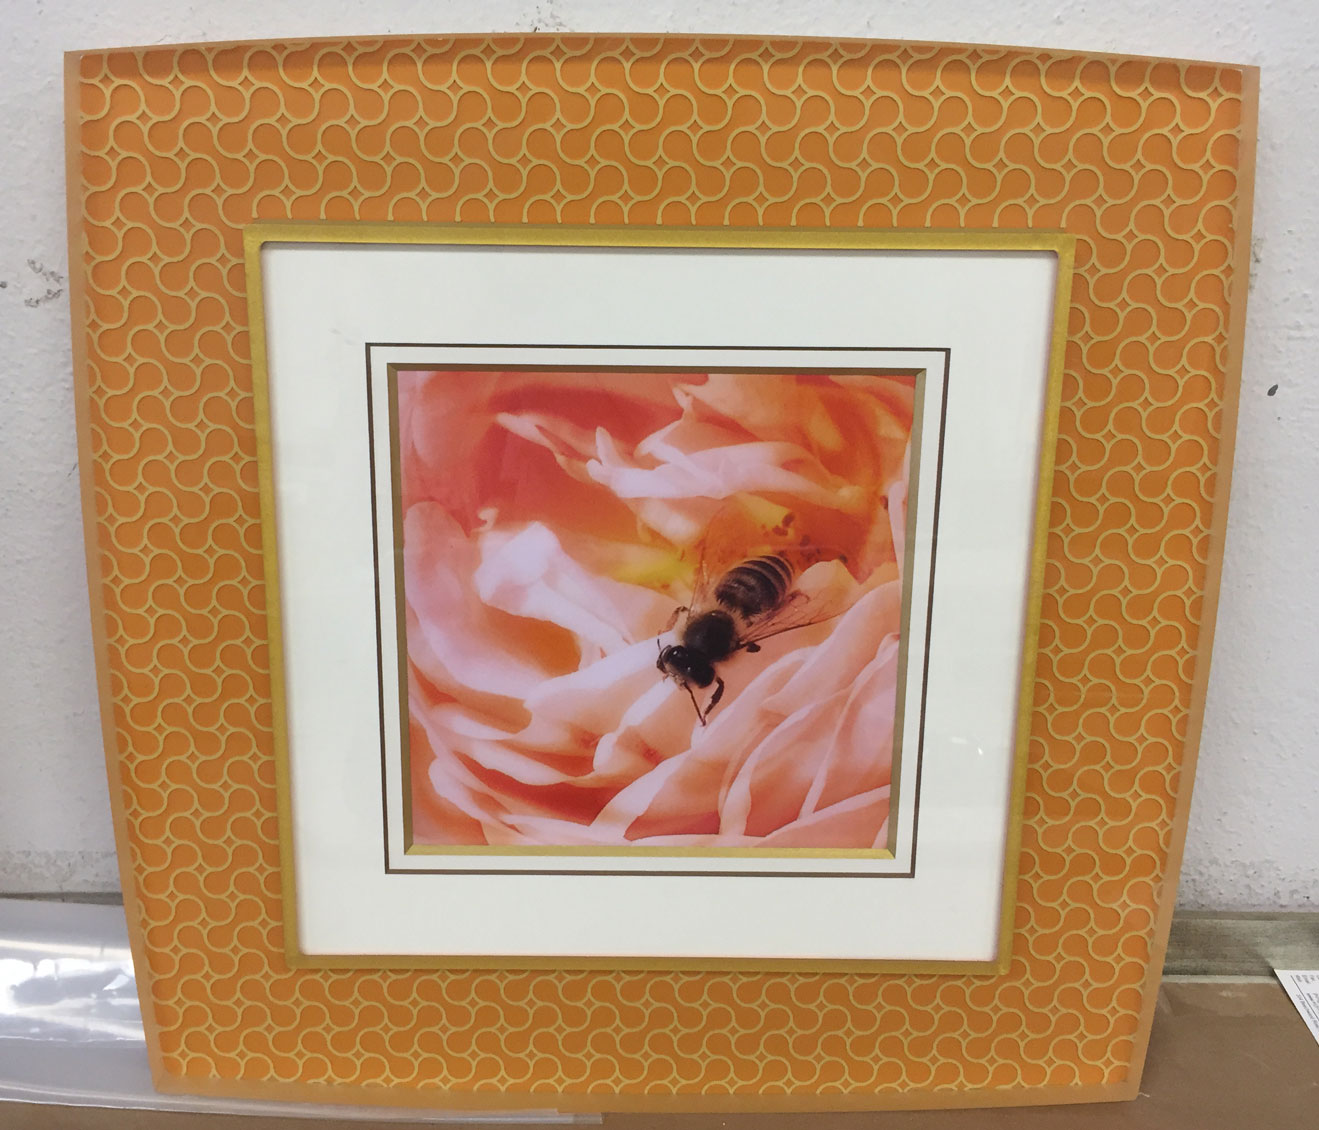 Prisma acrylic frame example from Gregory Frame Shop in Naples, Florida